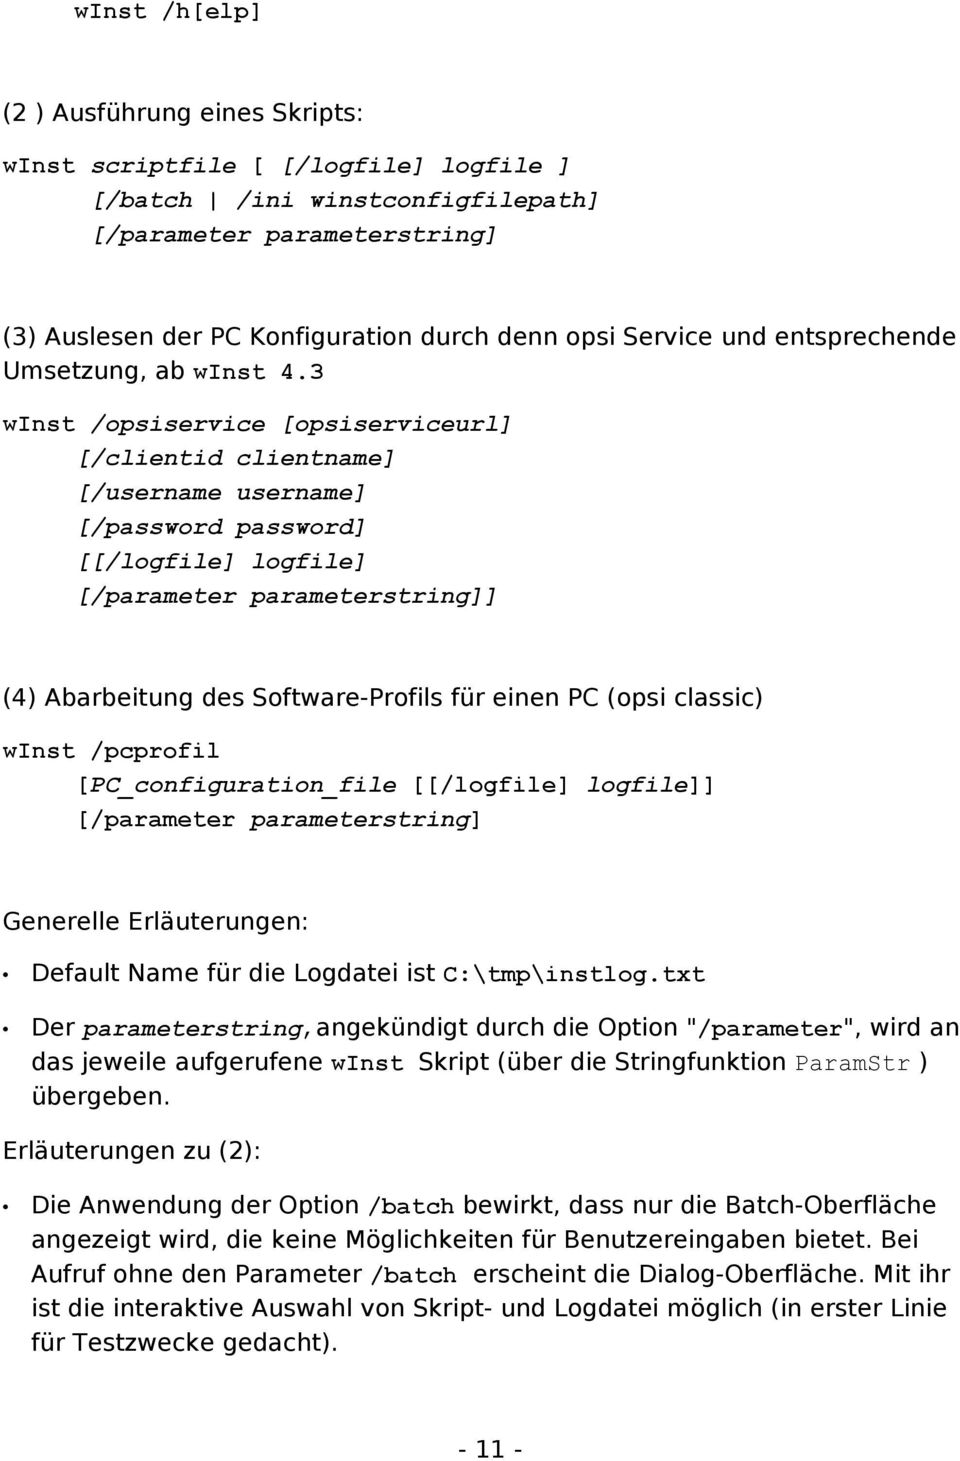 3 winst /opsiservice [opsiserviceurl] [/clientid clientname] [/username username] [/password password] [[/logfile] logfile] [/parameter parameterstring]] (4) Abarbeitung des Software-Profils für